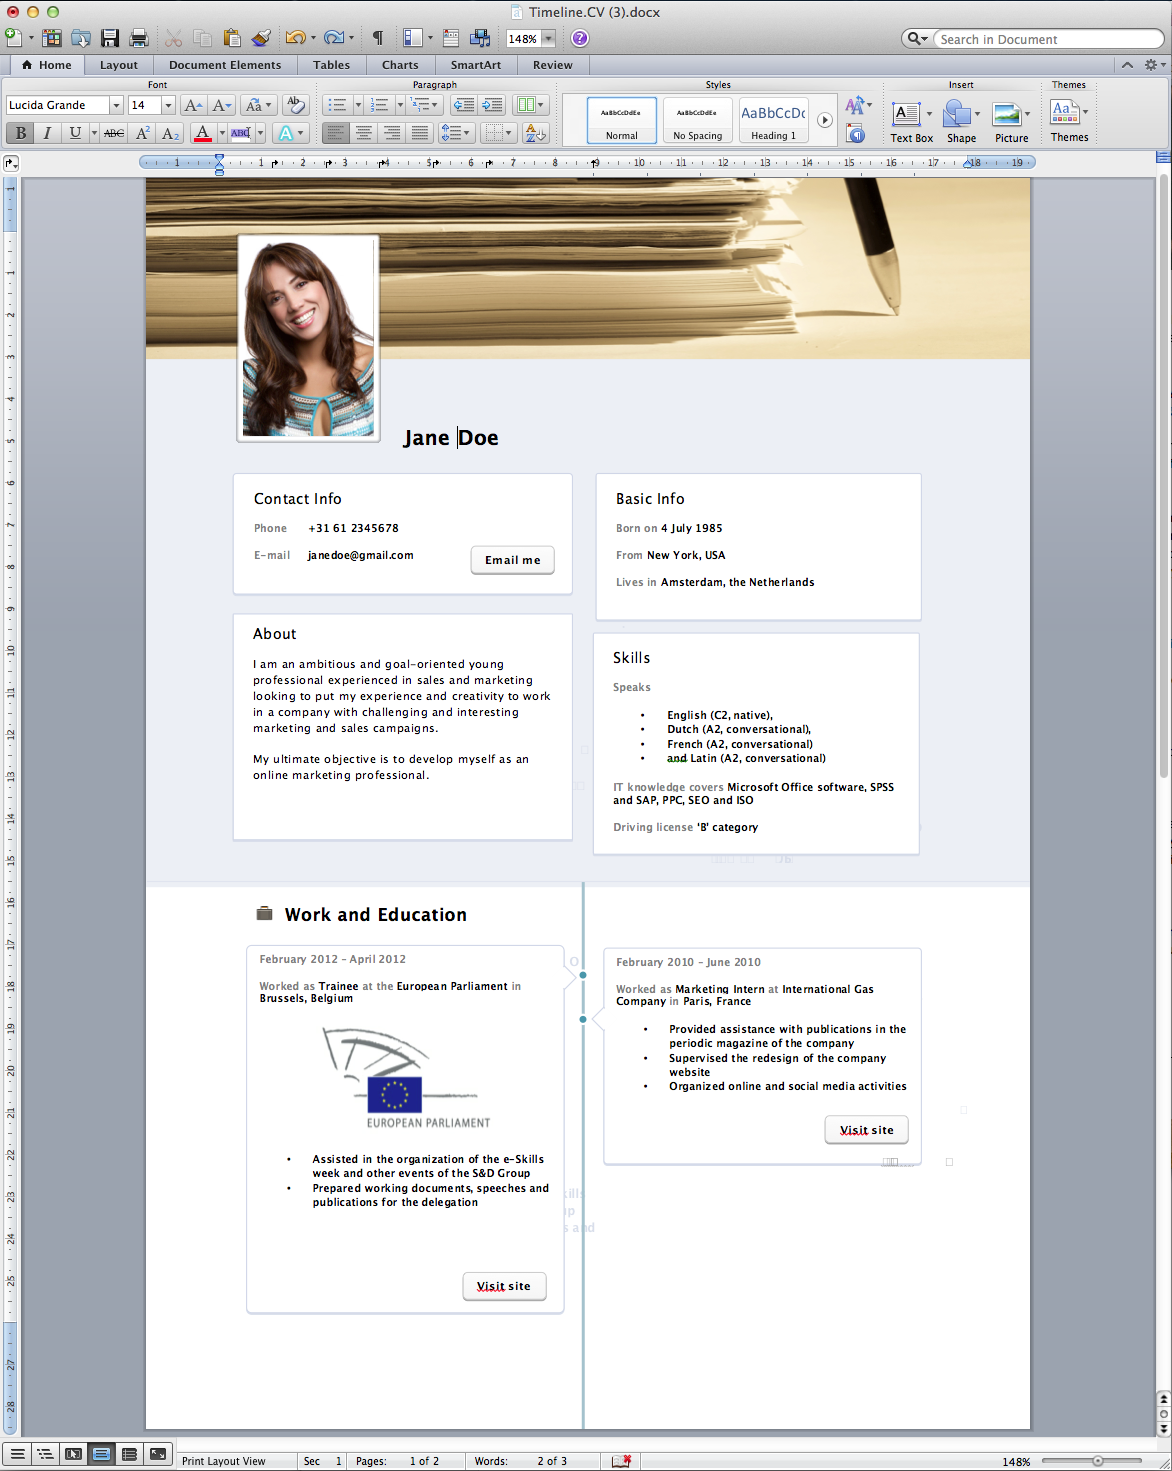 cv formate We will update here for you best cv formats 2018 new cv design templates the best and latest cv format design for profession cv style making step by step create full details given on your cv template, a professional free cv format pdf download online.